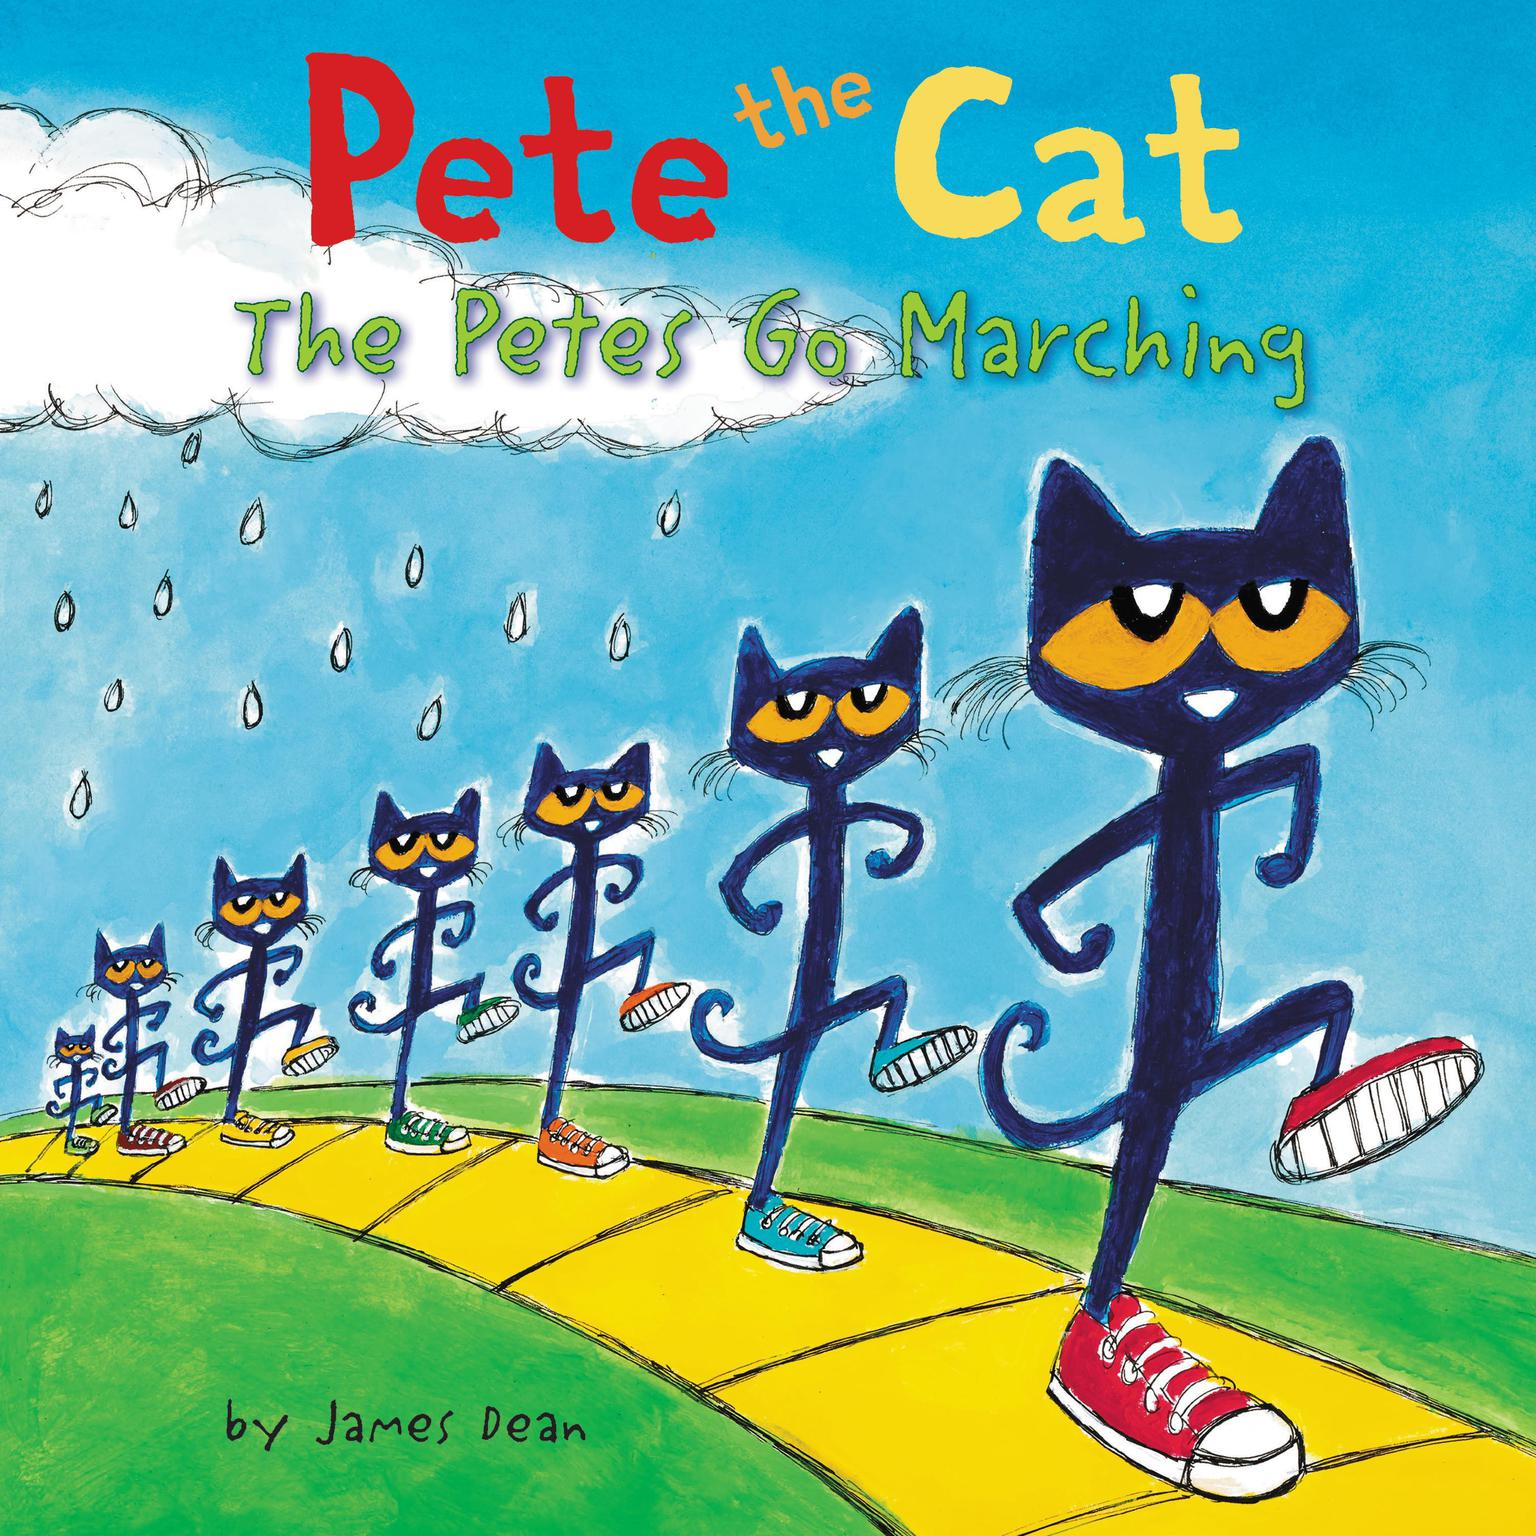 Pete the Cat: The Petes Go Marching Audiobook, by James Dean